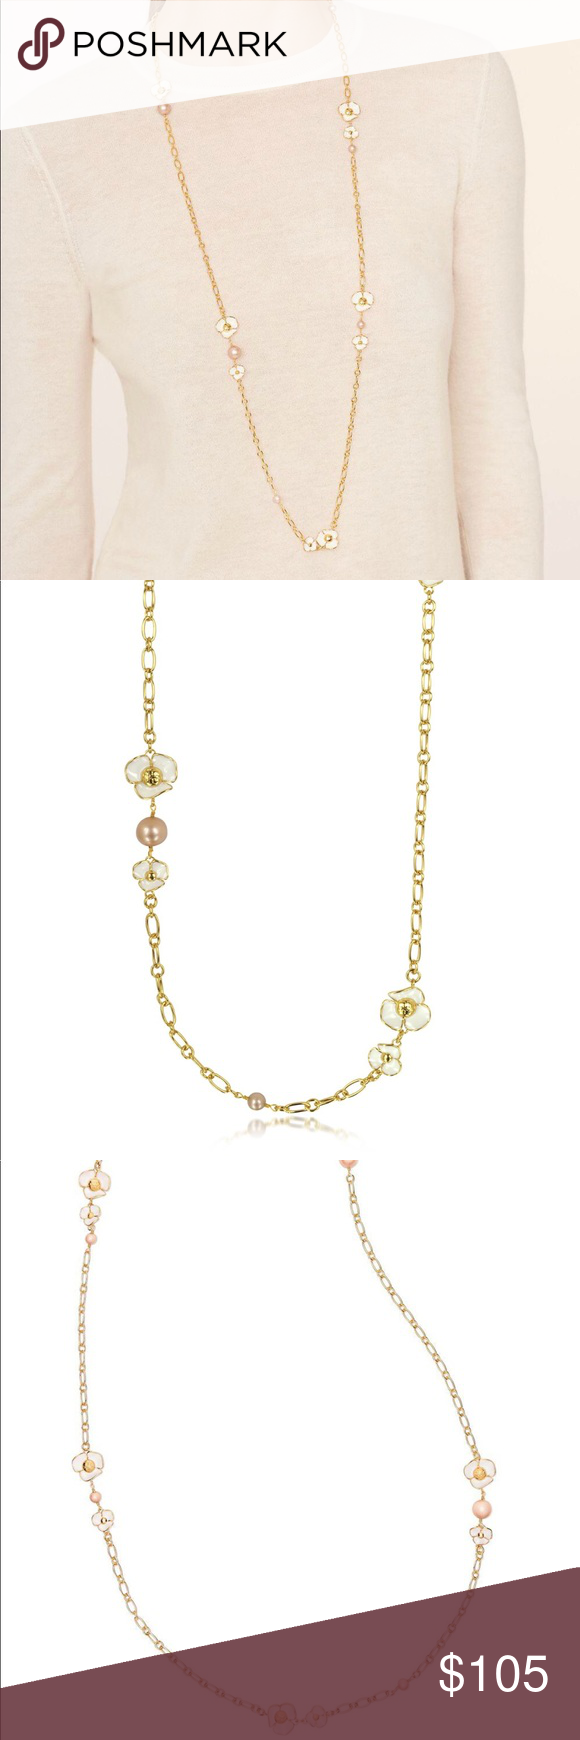 """e18d7585b933 Tory Burch ivory fleur rosary necklace Tory Burch Fleur Rosary necklace  approximate measurement total length 41"""" and half length 20.5. Tory Burch  Jewelry ..."""